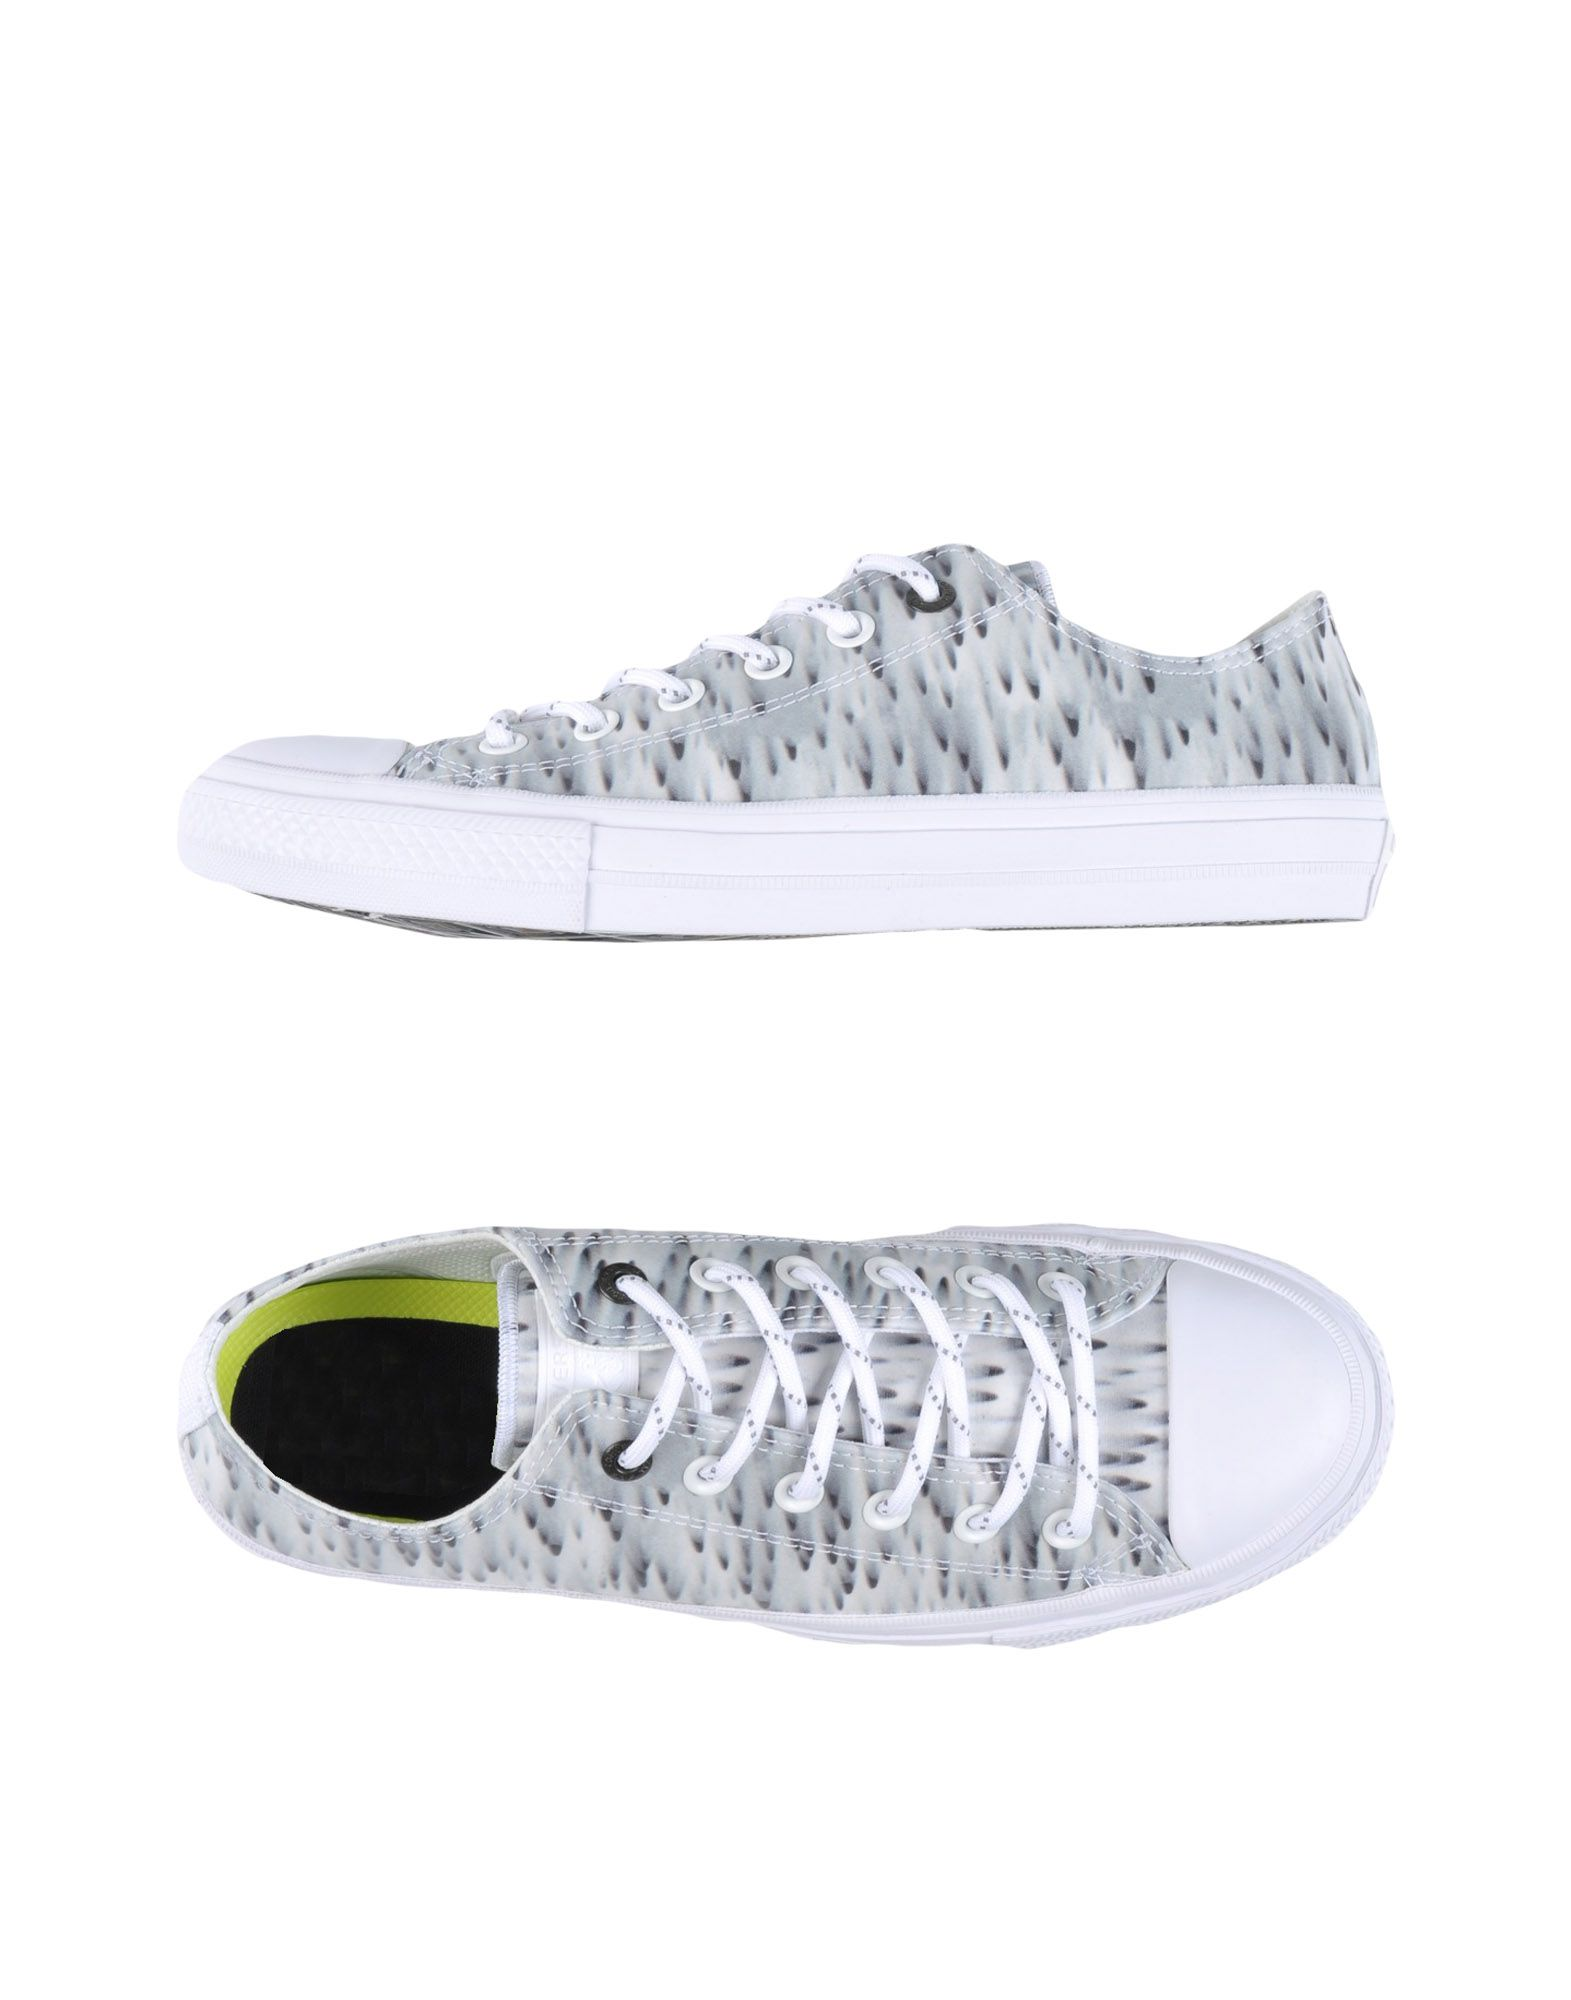 Turnschuhe Converse All Star herren - 11152828UM